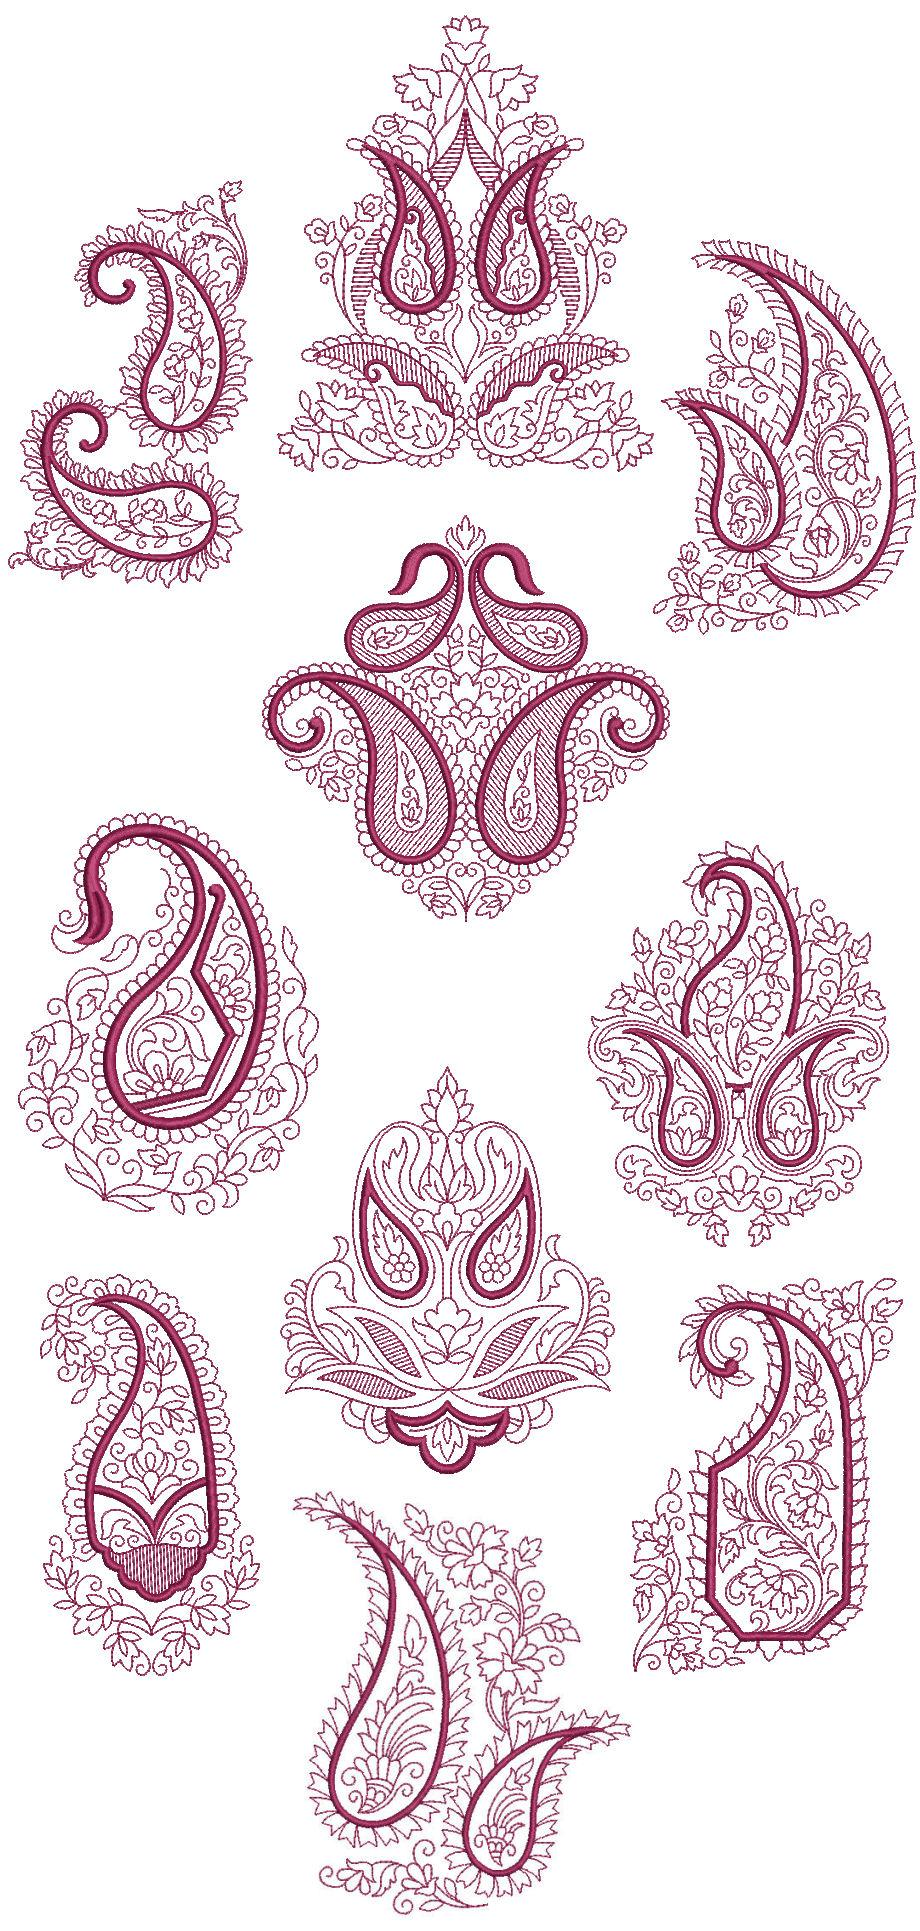 Janome Quilting Embroidery Designs : Paisley Redwork Quilt Blocks Machine Embroidery Designs CD 5x7 Brother, Janome eBay